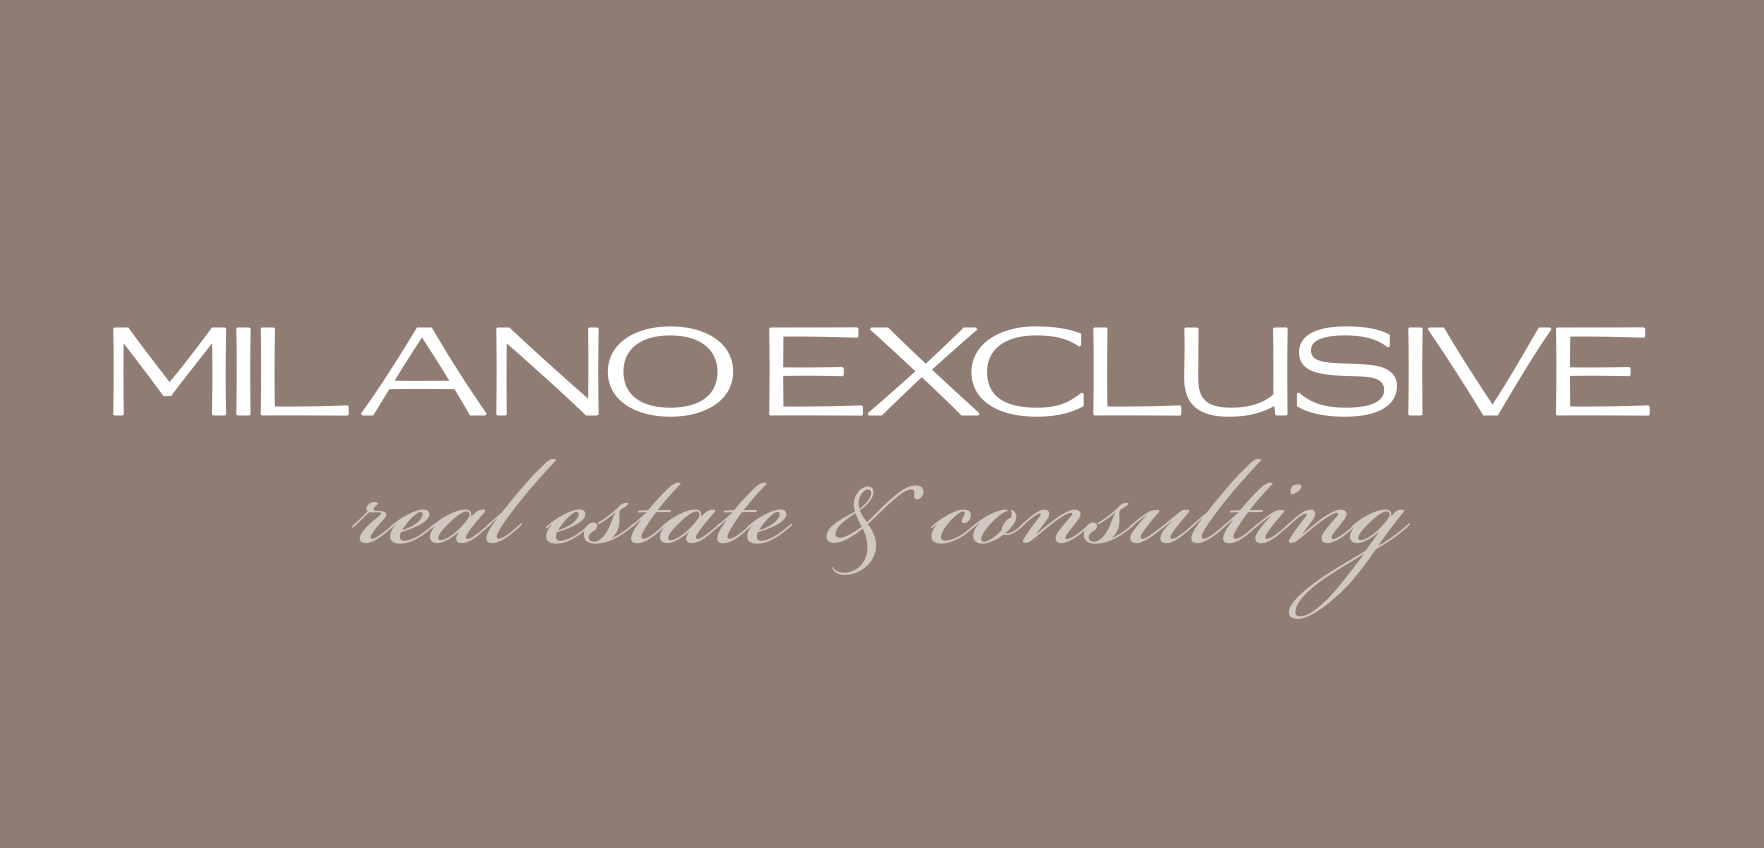 MILANO EXCLUSIVE, Real Estate & Consulting